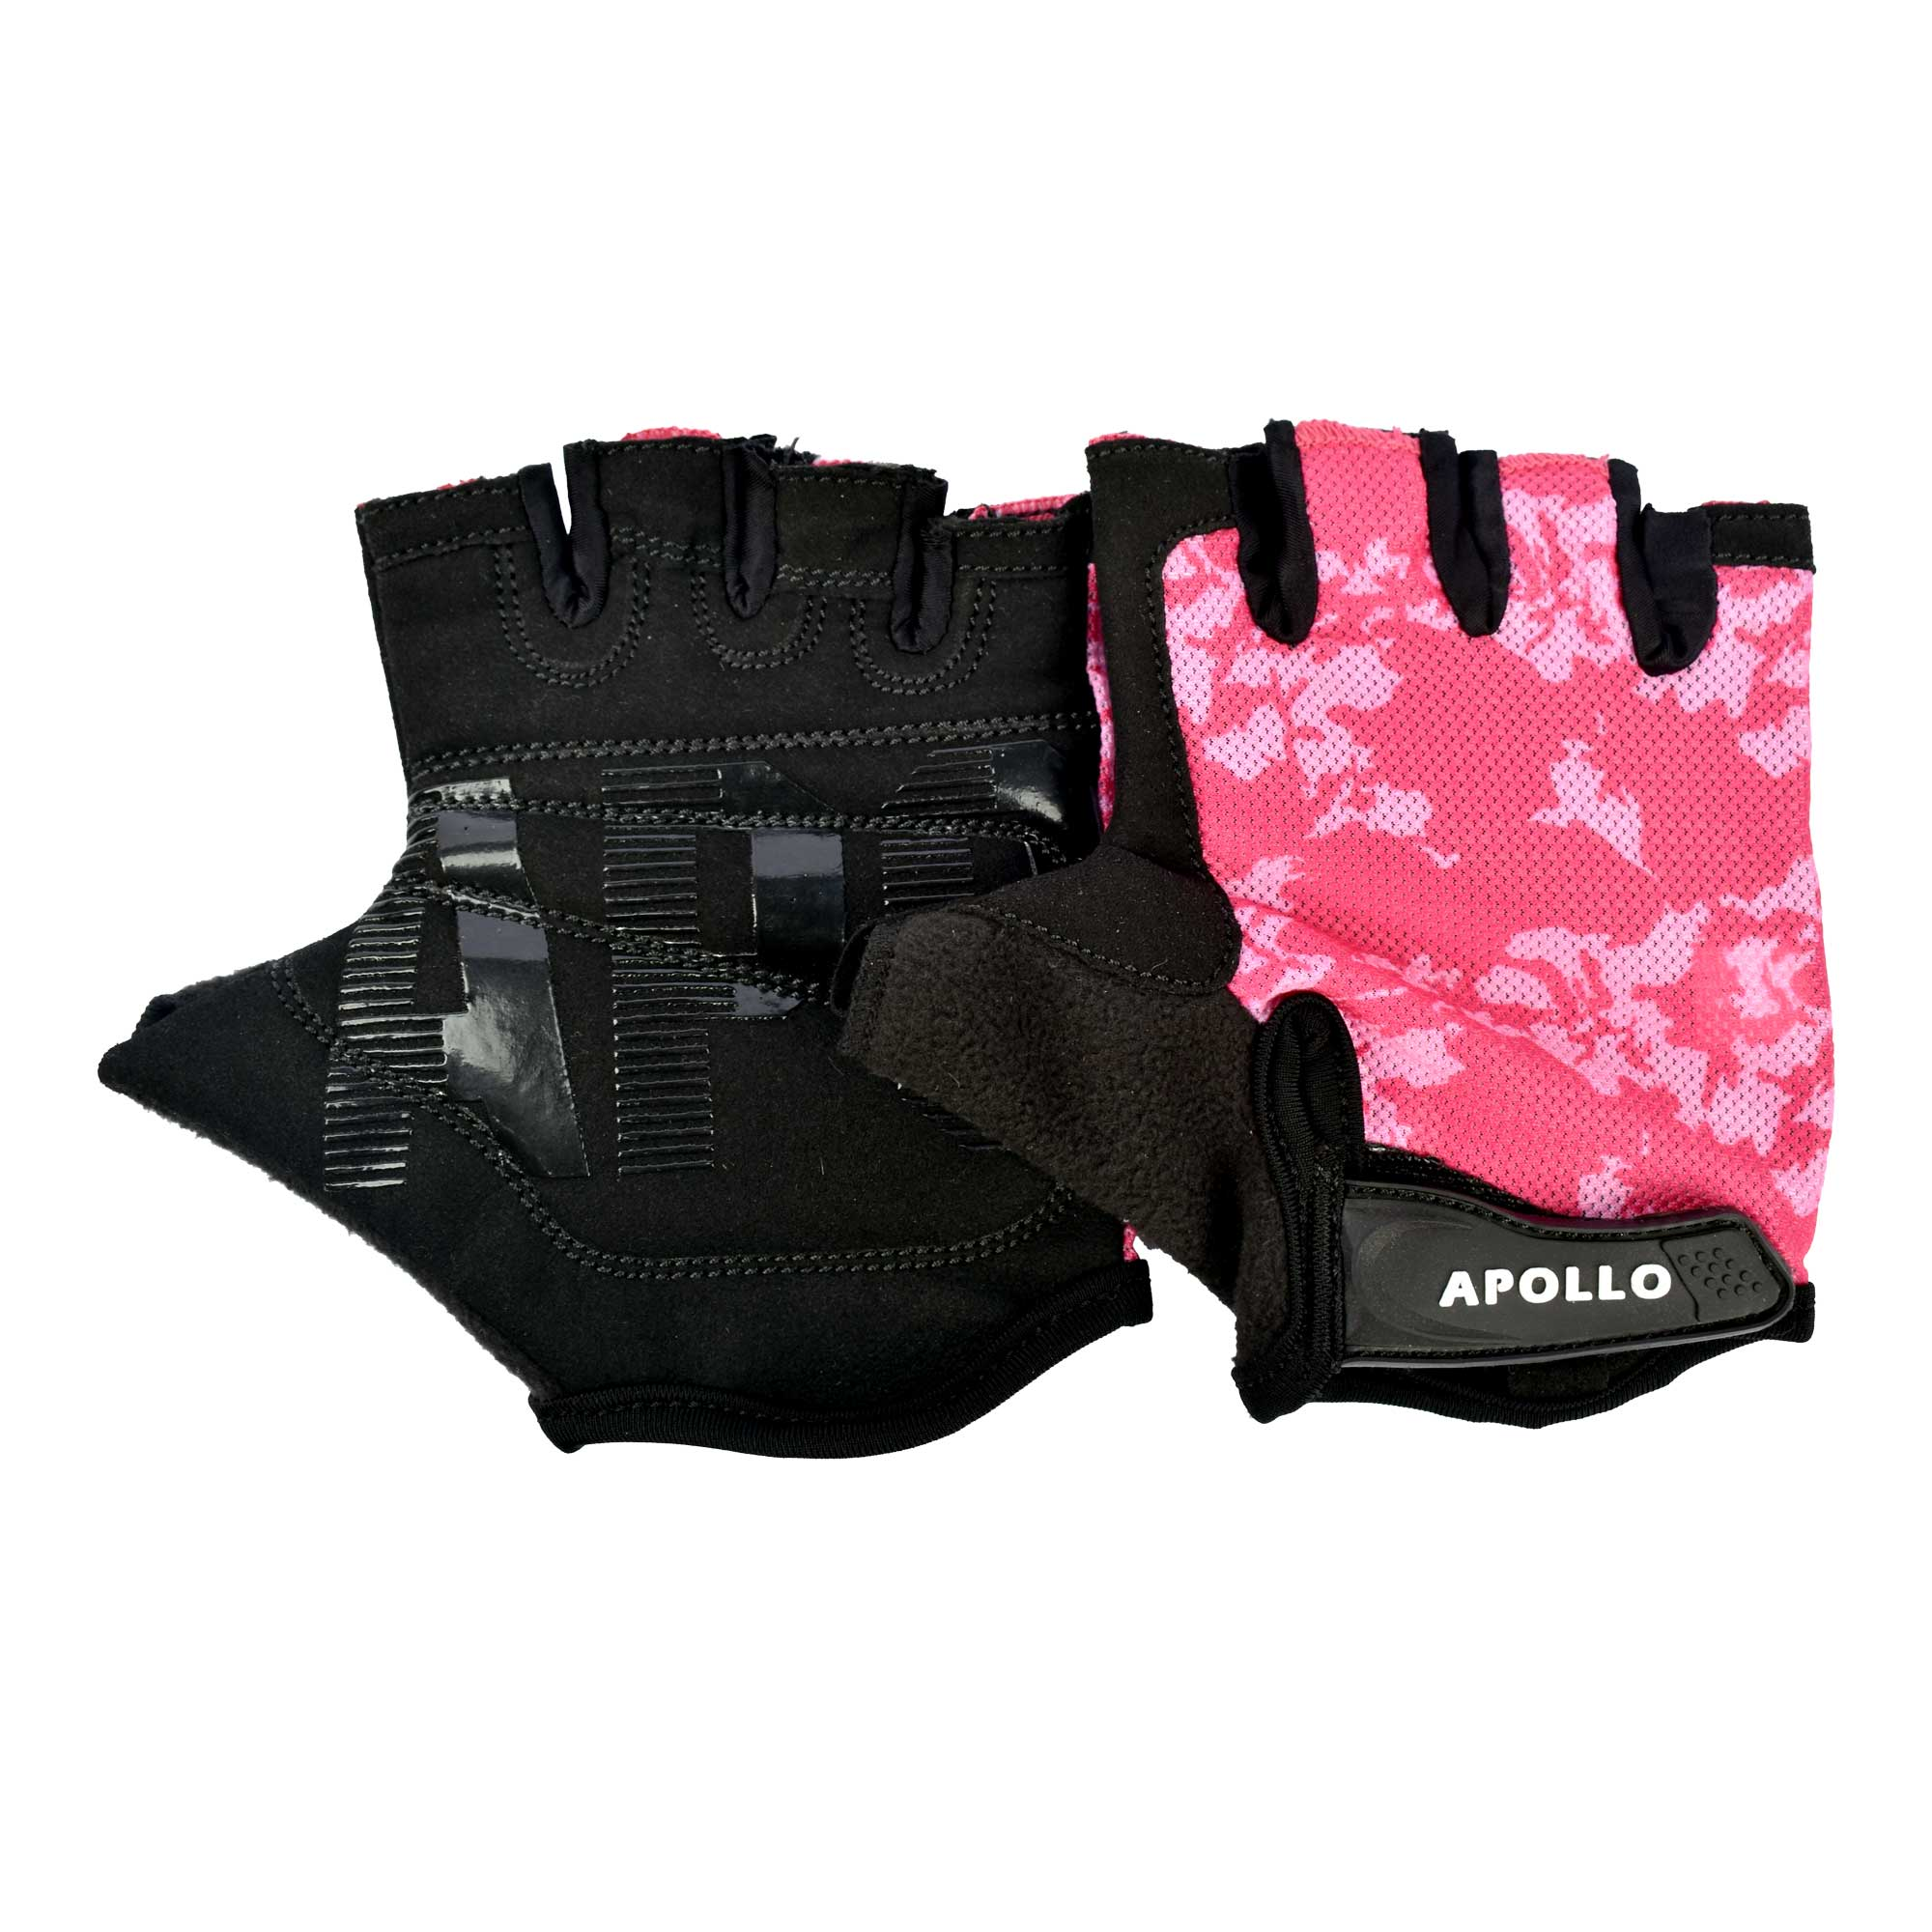 APOLLO WEIGHT LIFTING TRAINING GYM GLOVES FAWG27 - BLACKPINK